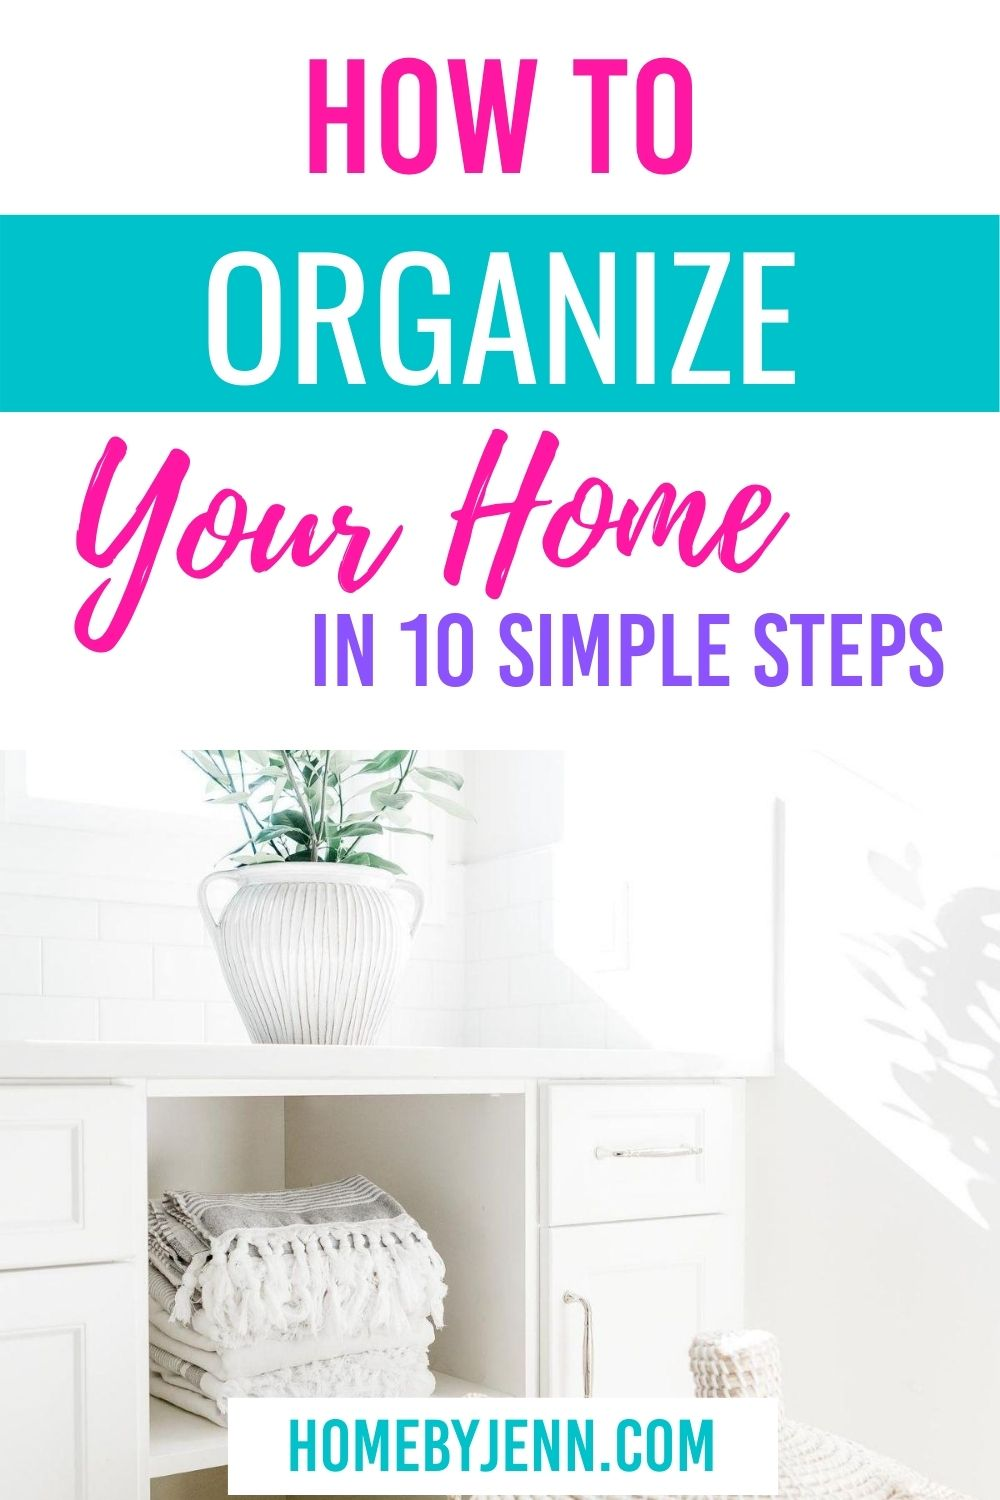 Learn how to organize your home in just 10 simple steps. These tips on how to organize your home are simple to follow and will have you living in an organized home in no time! #declutter #organize #organizedhome #organizingtips #organizingideas #organizinghacks #organizingtipsandtricks via @homebyjenn